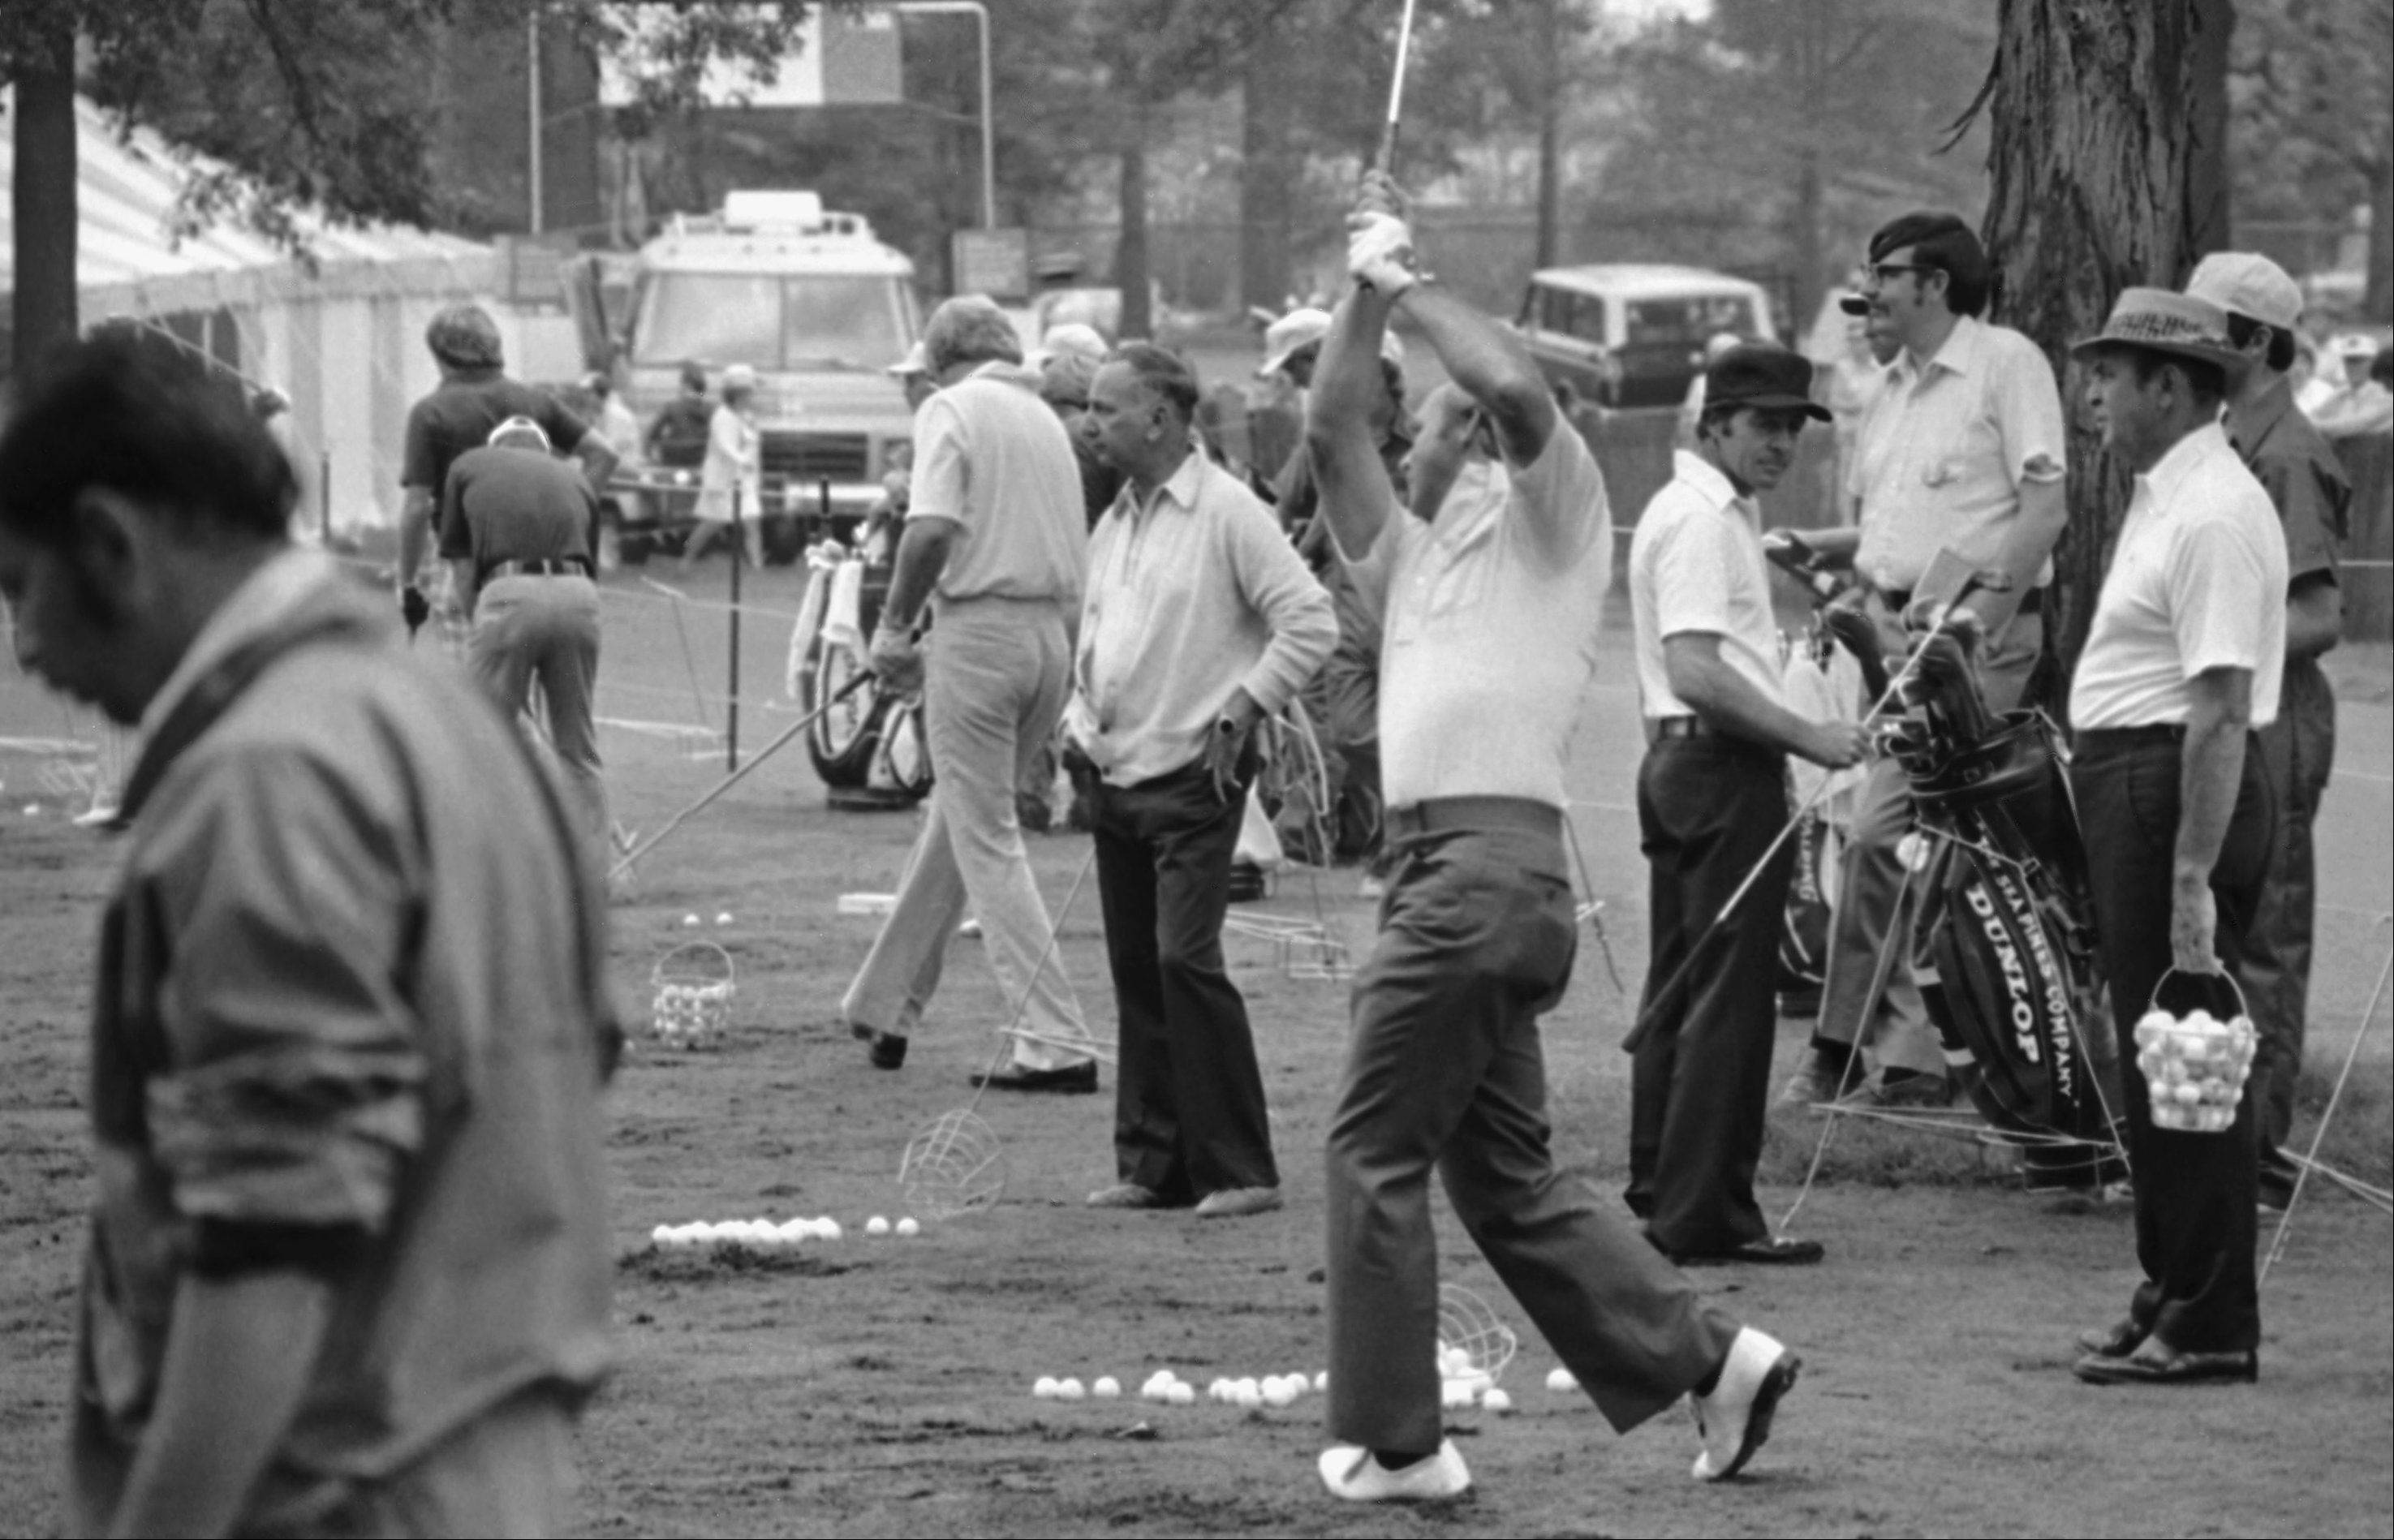 While Arnold Palmer, center, hits from the practice tee at Medinah Country Club, Tuesday, June 17, 1975, Medinah, Ill. Gary Player of South Africa, dark cap, and veteran Sam Sneed, holding a bucked of ball at right, await their turn to get in some practice swings.